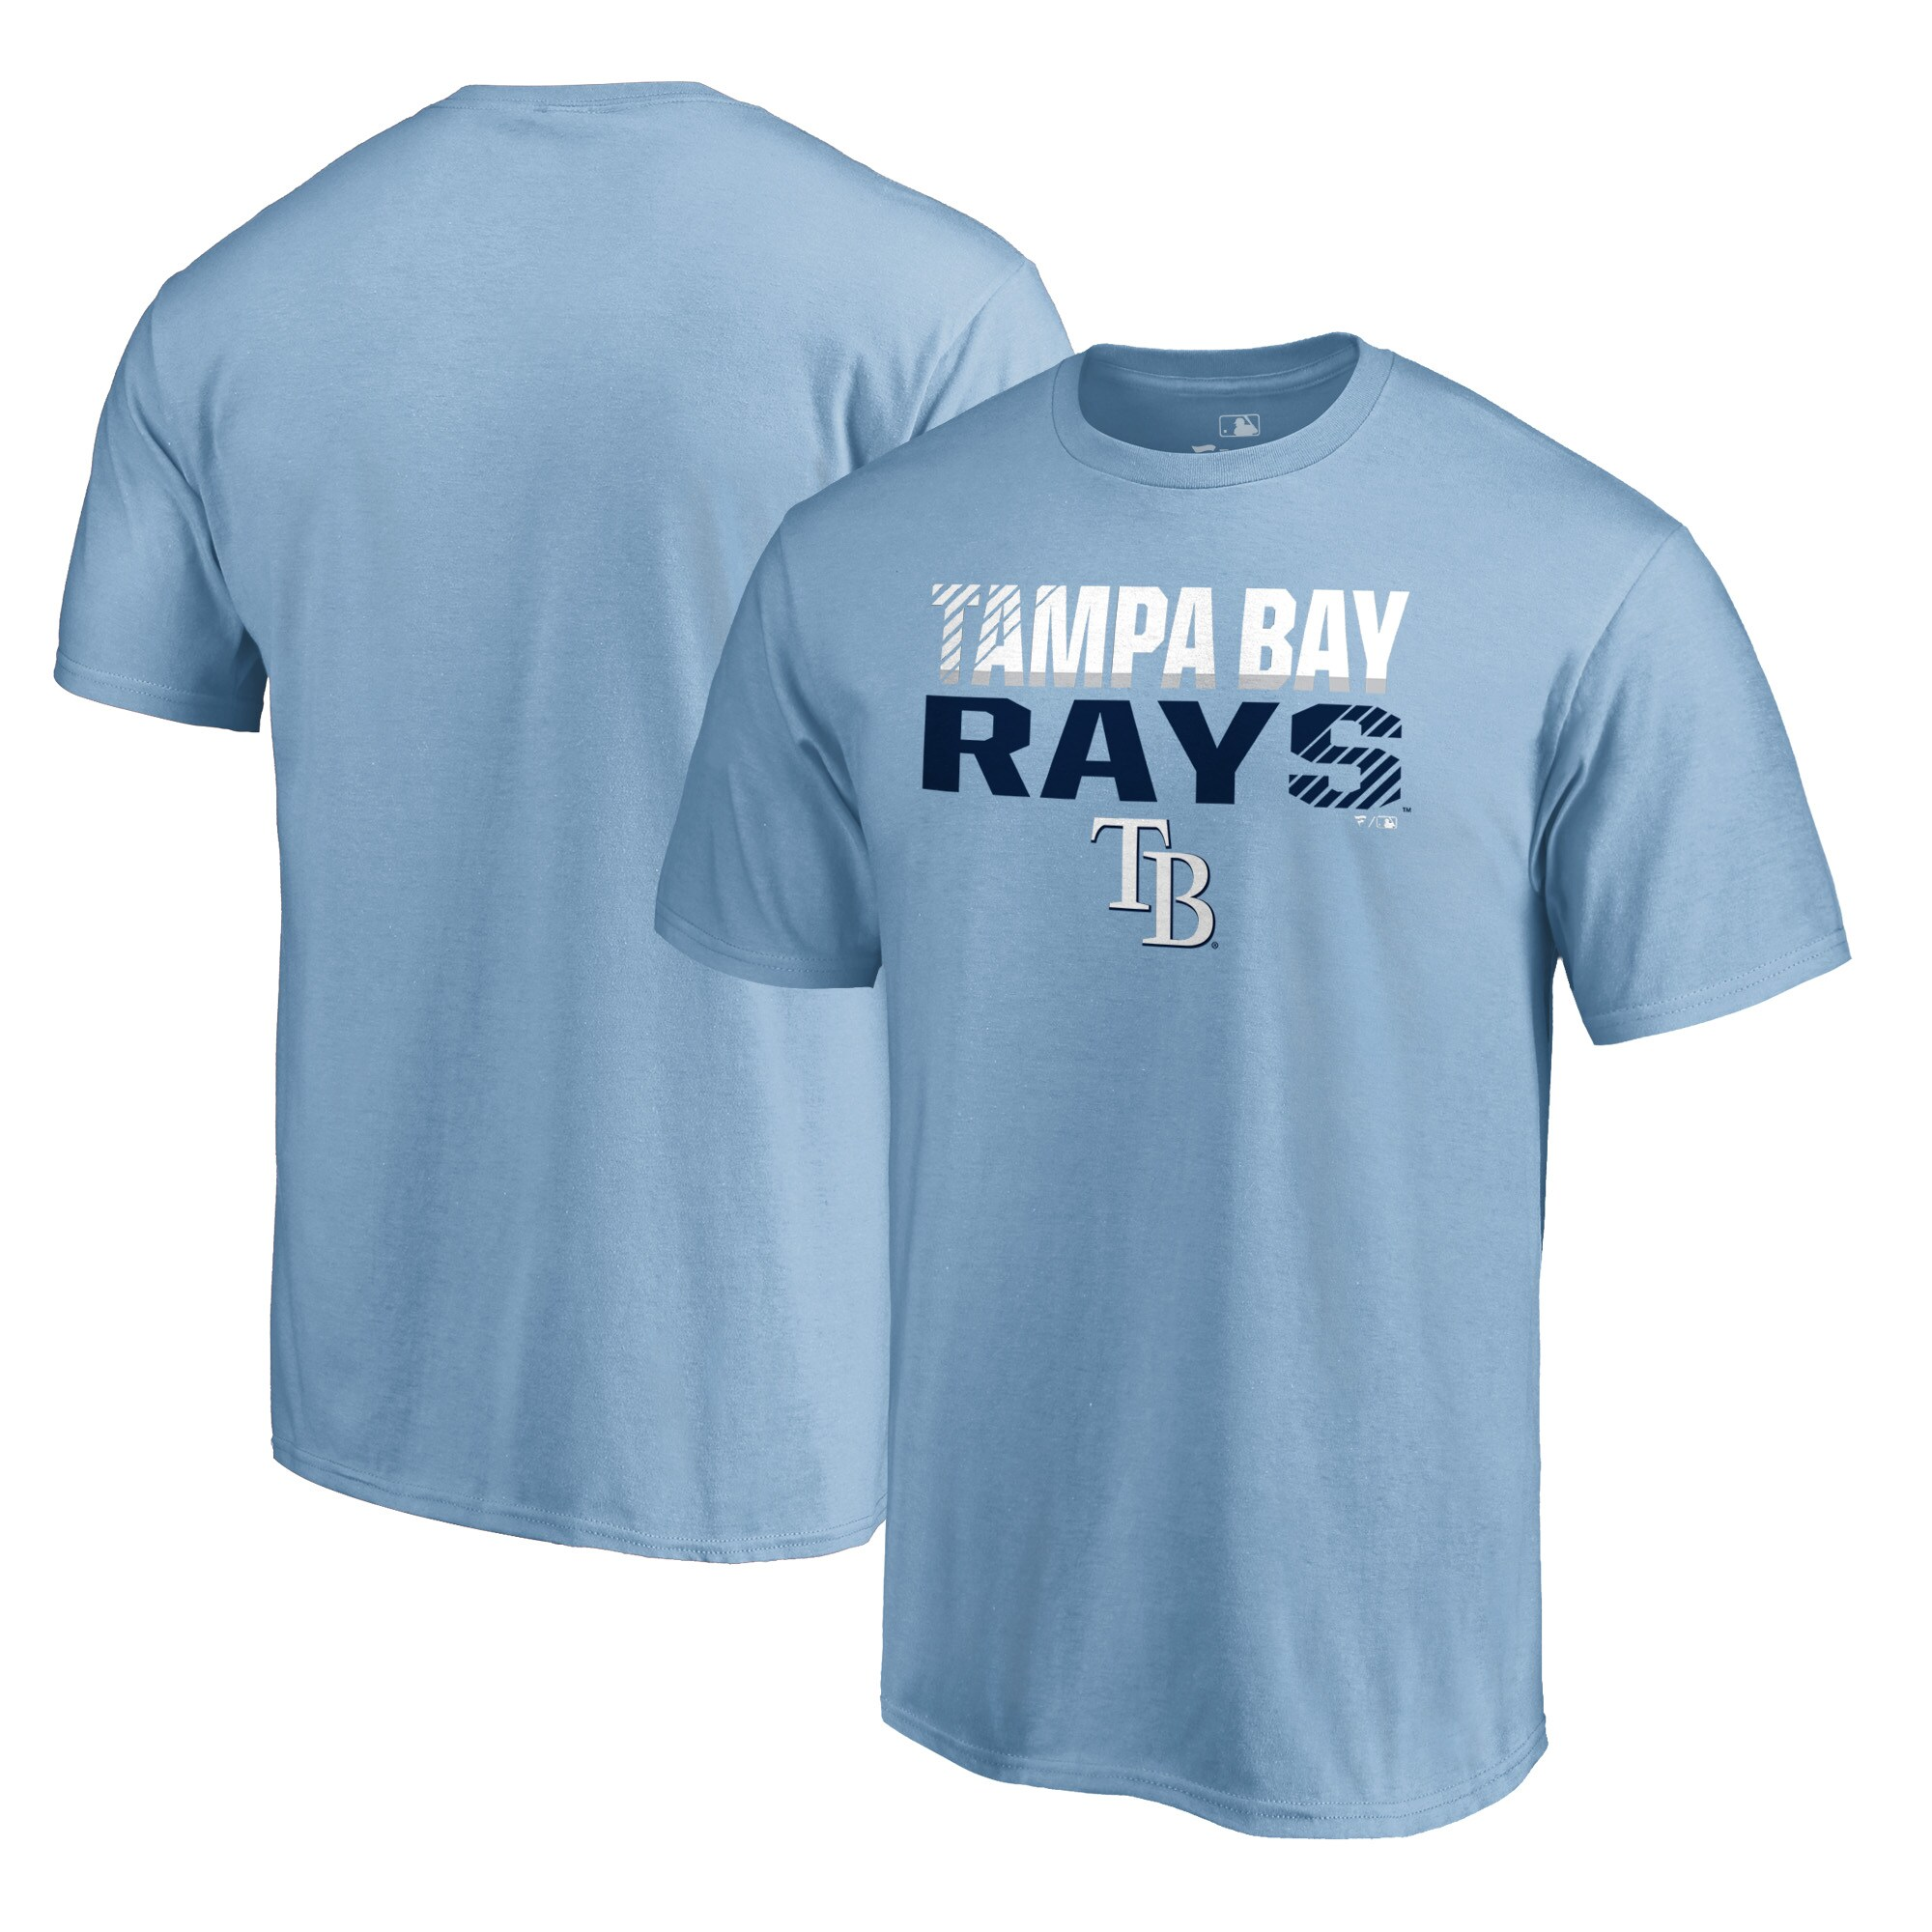 Tampa Bay Rays Fanatics Branded Fade Out T-Shirt - Light Blue